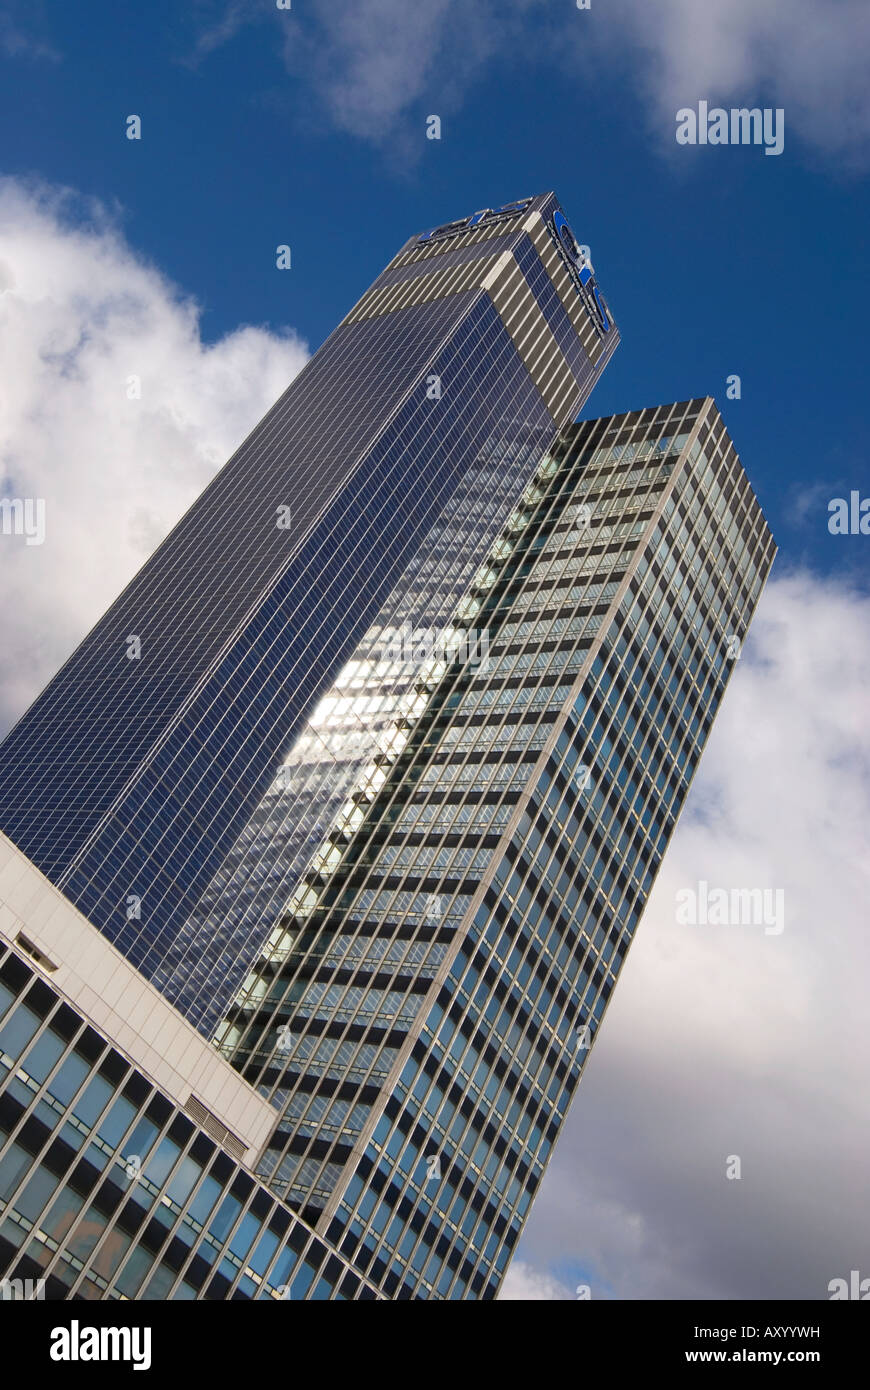 The CIS building in Manchester, the third tallest building in Europe at the time of its construction. Covered in - Stock Image